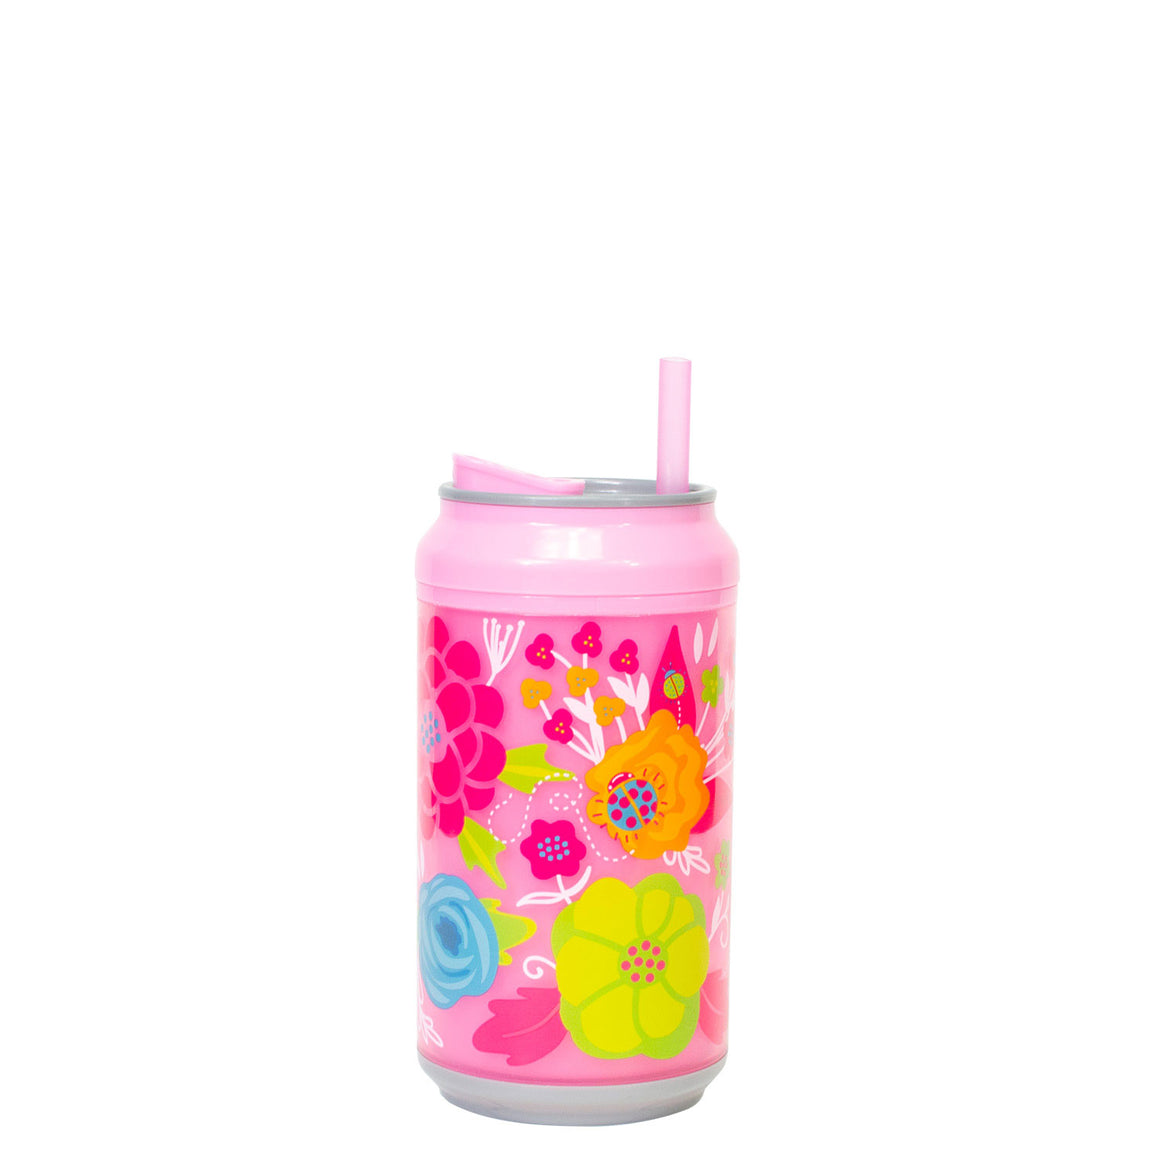 Cool Gear | 12 Oz Easter Coolgearcan (with Straw) in Pastel Blue / Chicks